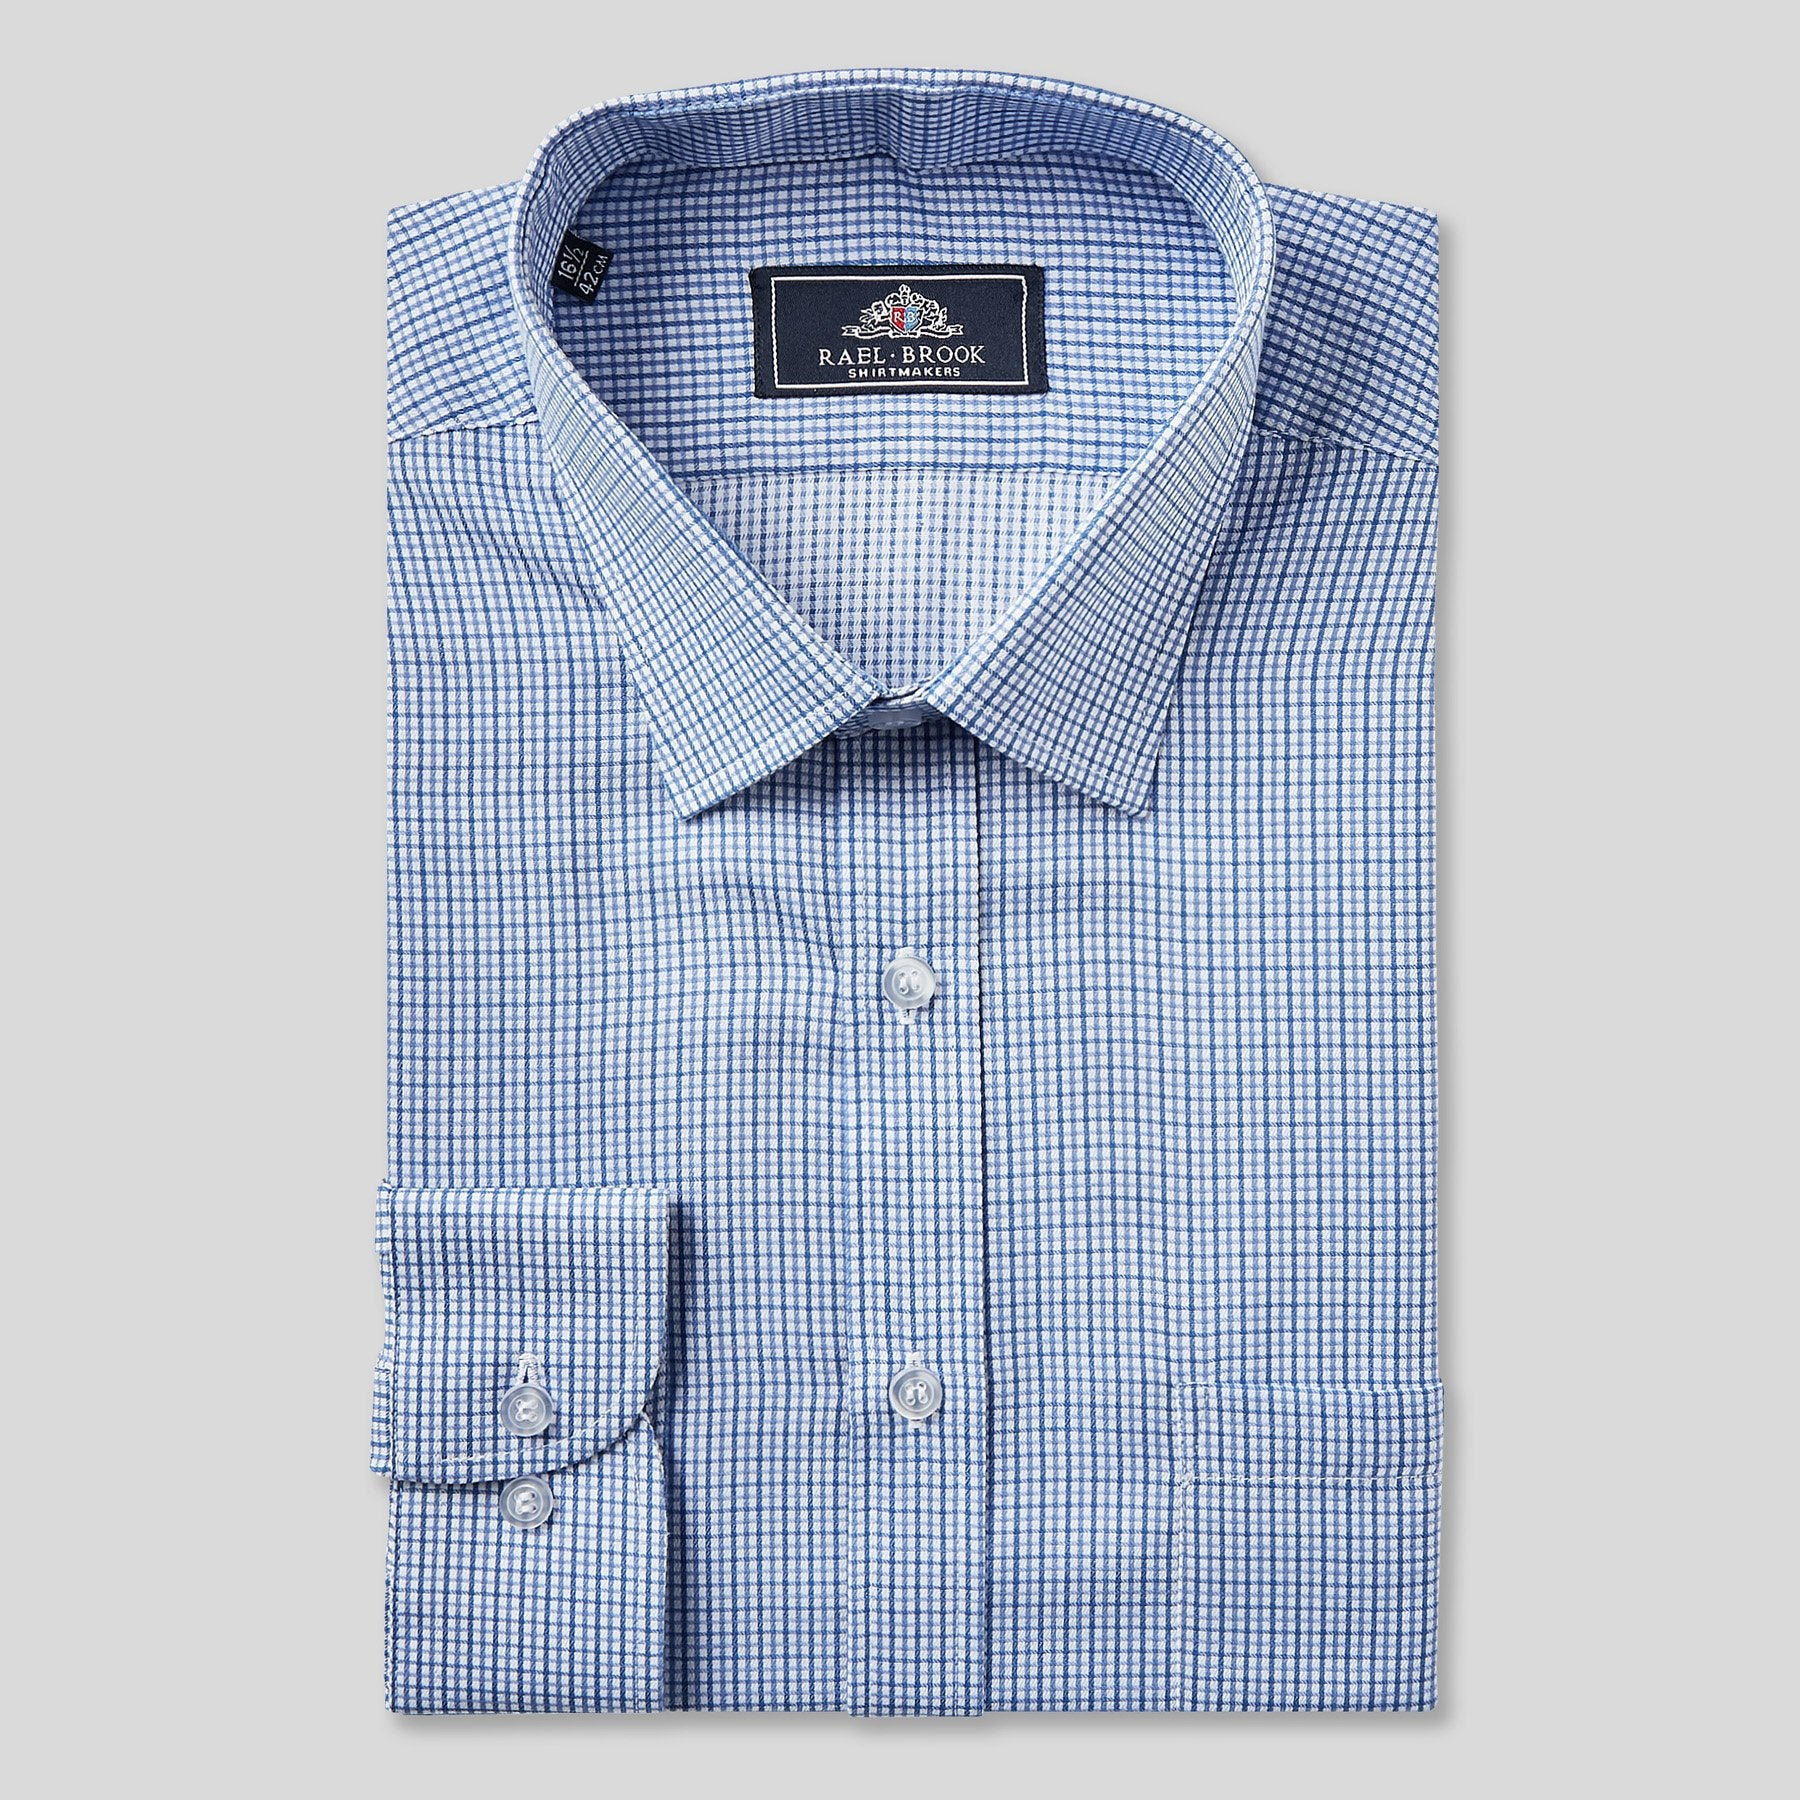 9041-Rael-Brook-Classic-Fit-Blue-Micro-Check-Single-Cuff-Shirt-1